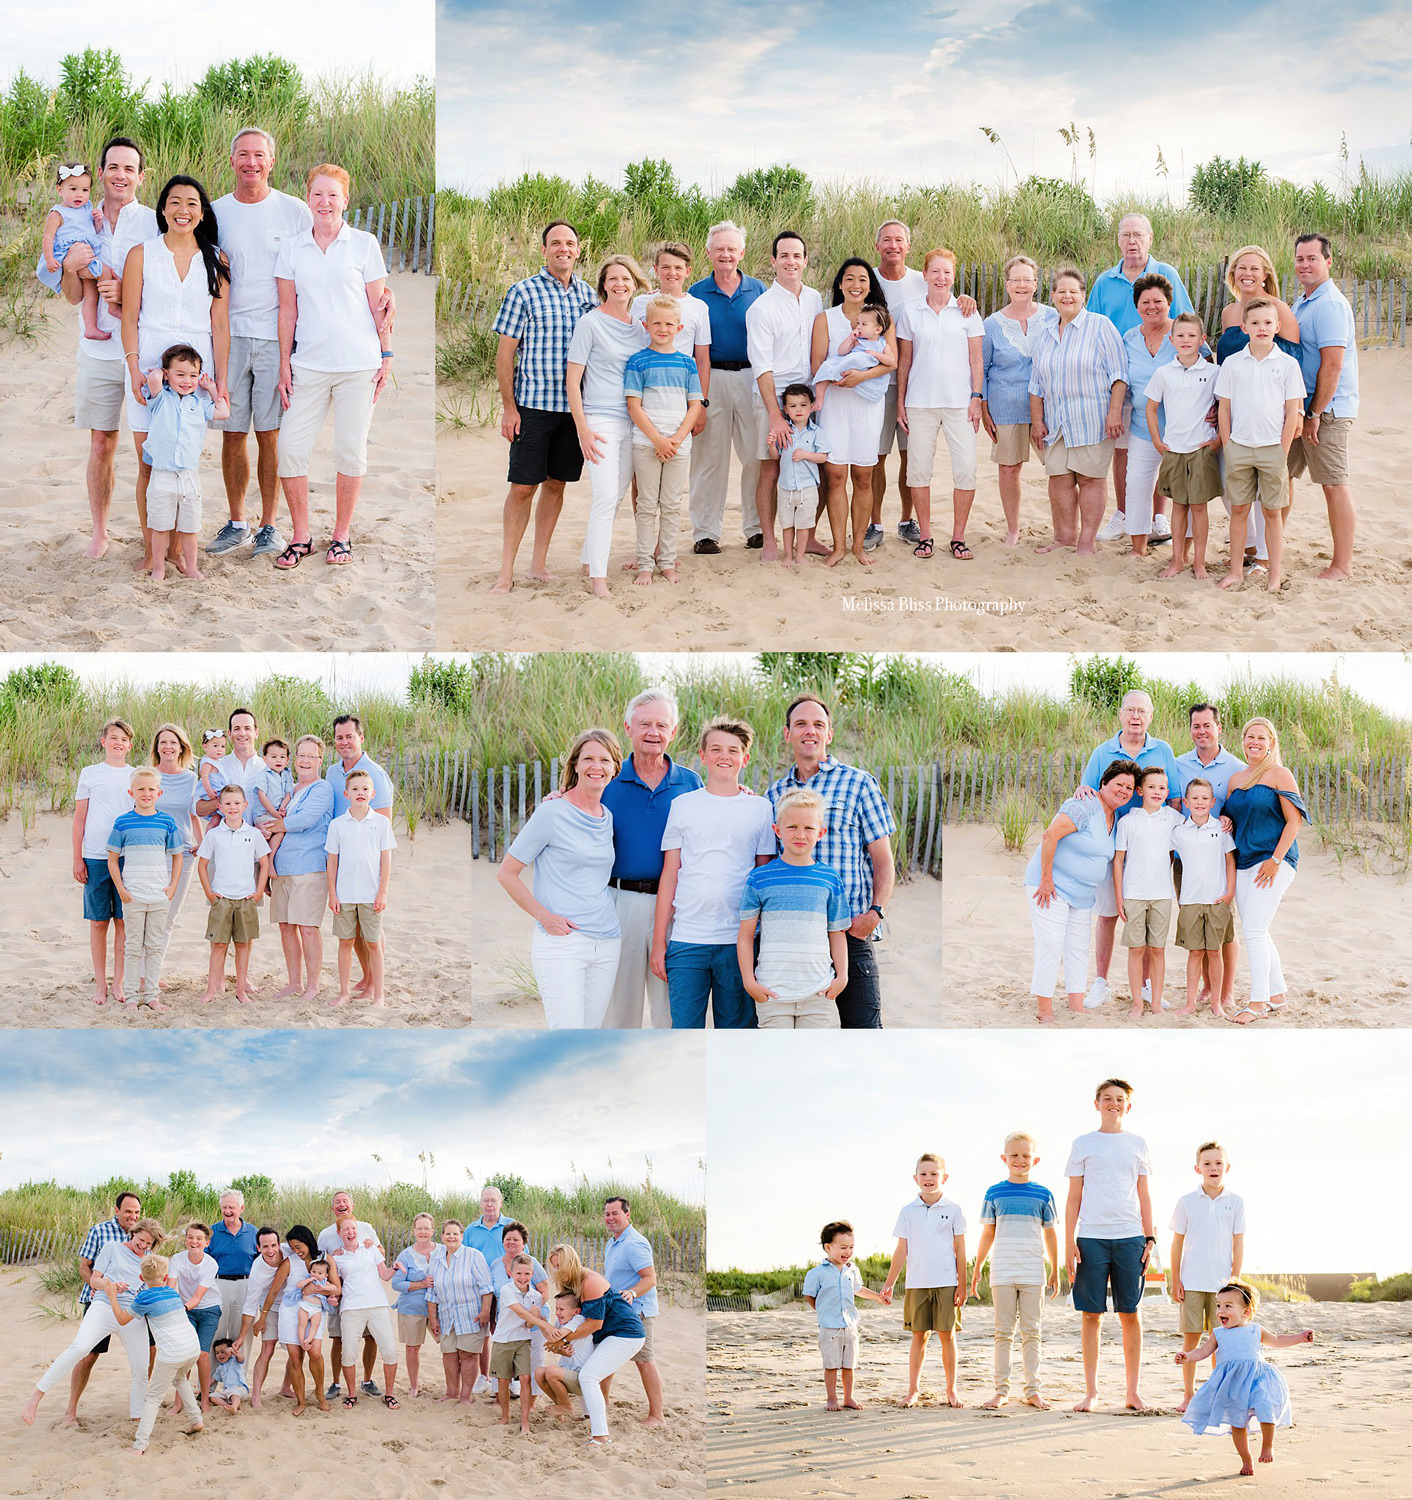 sandbridge-family-photos-virginia-beach-melissa-bliss-photography.jpg